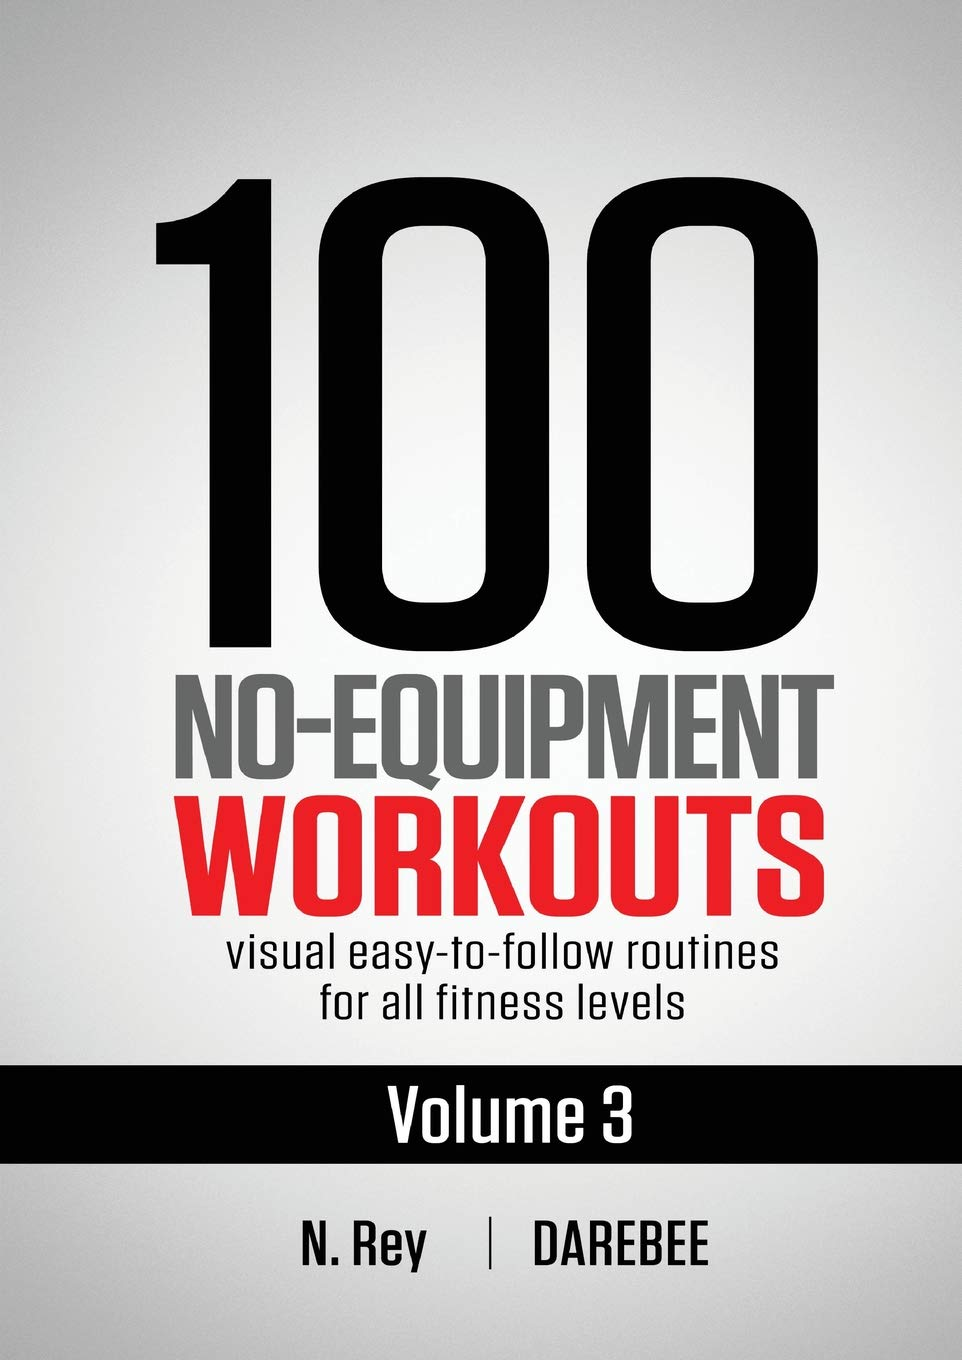 100 No Equipment Workouts Vol. 3  Easy To Follow Home Workout Routines With Visual Guides For All Fitness Levels